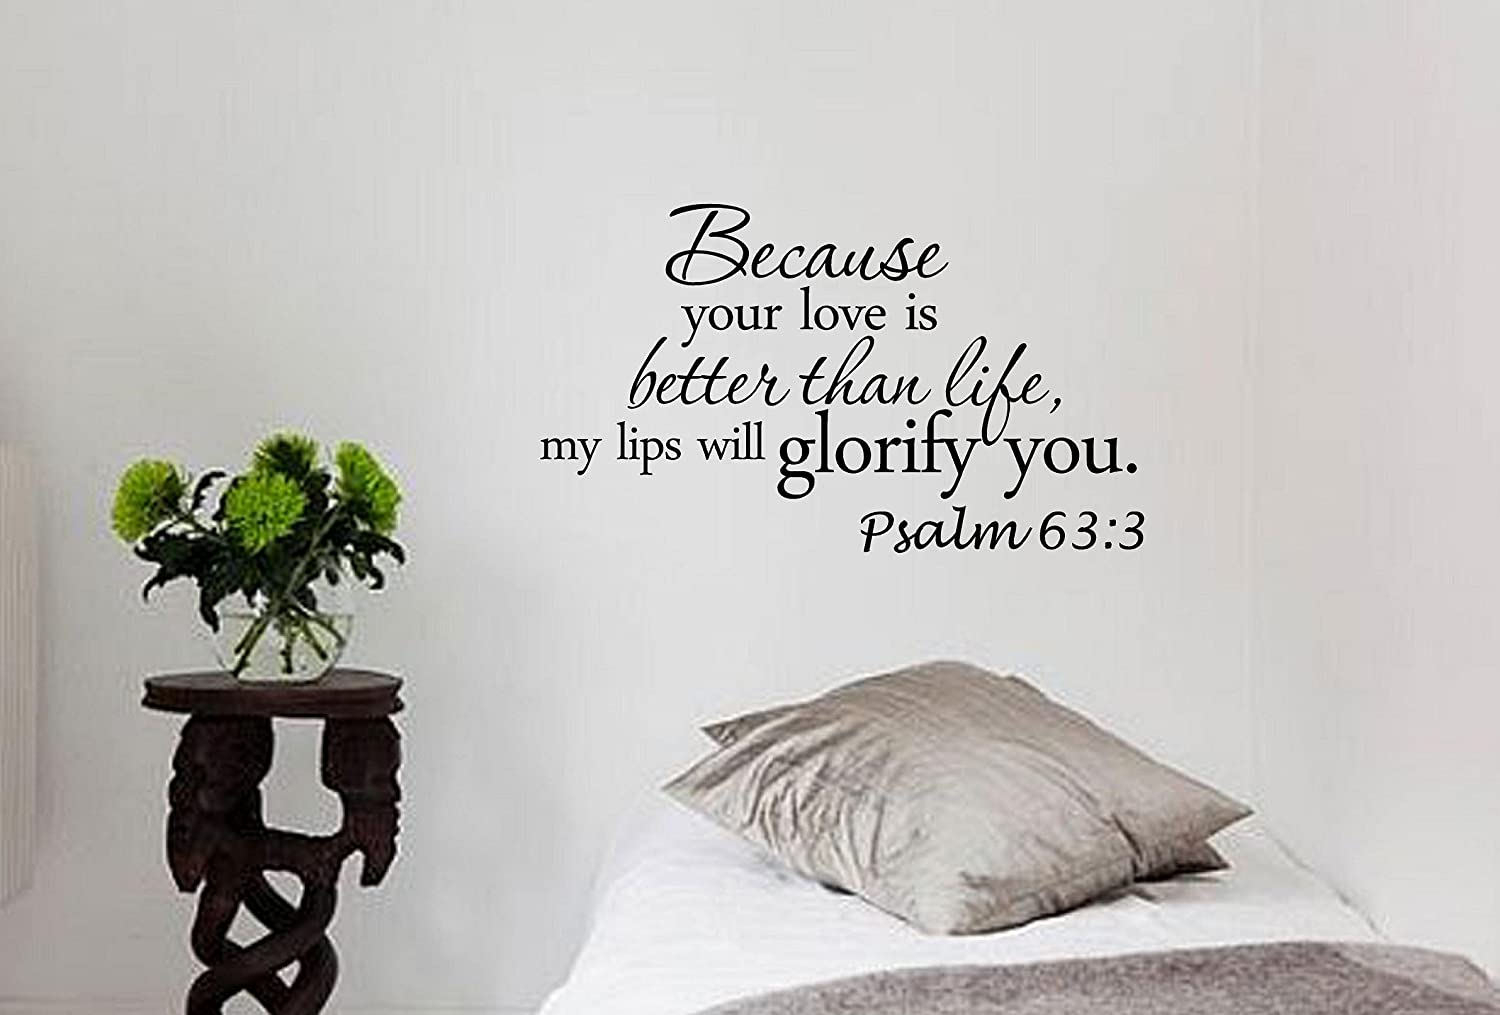 Because Your Love Is Better Than Life, My Lips Will Glorify You. Psalm 63:3 Bible Verse Inches Symbol Matte Black Vinyl Silhouette Keypad Track Pad Decal Window Wall Quotes Sayings Art Vinyl Decal